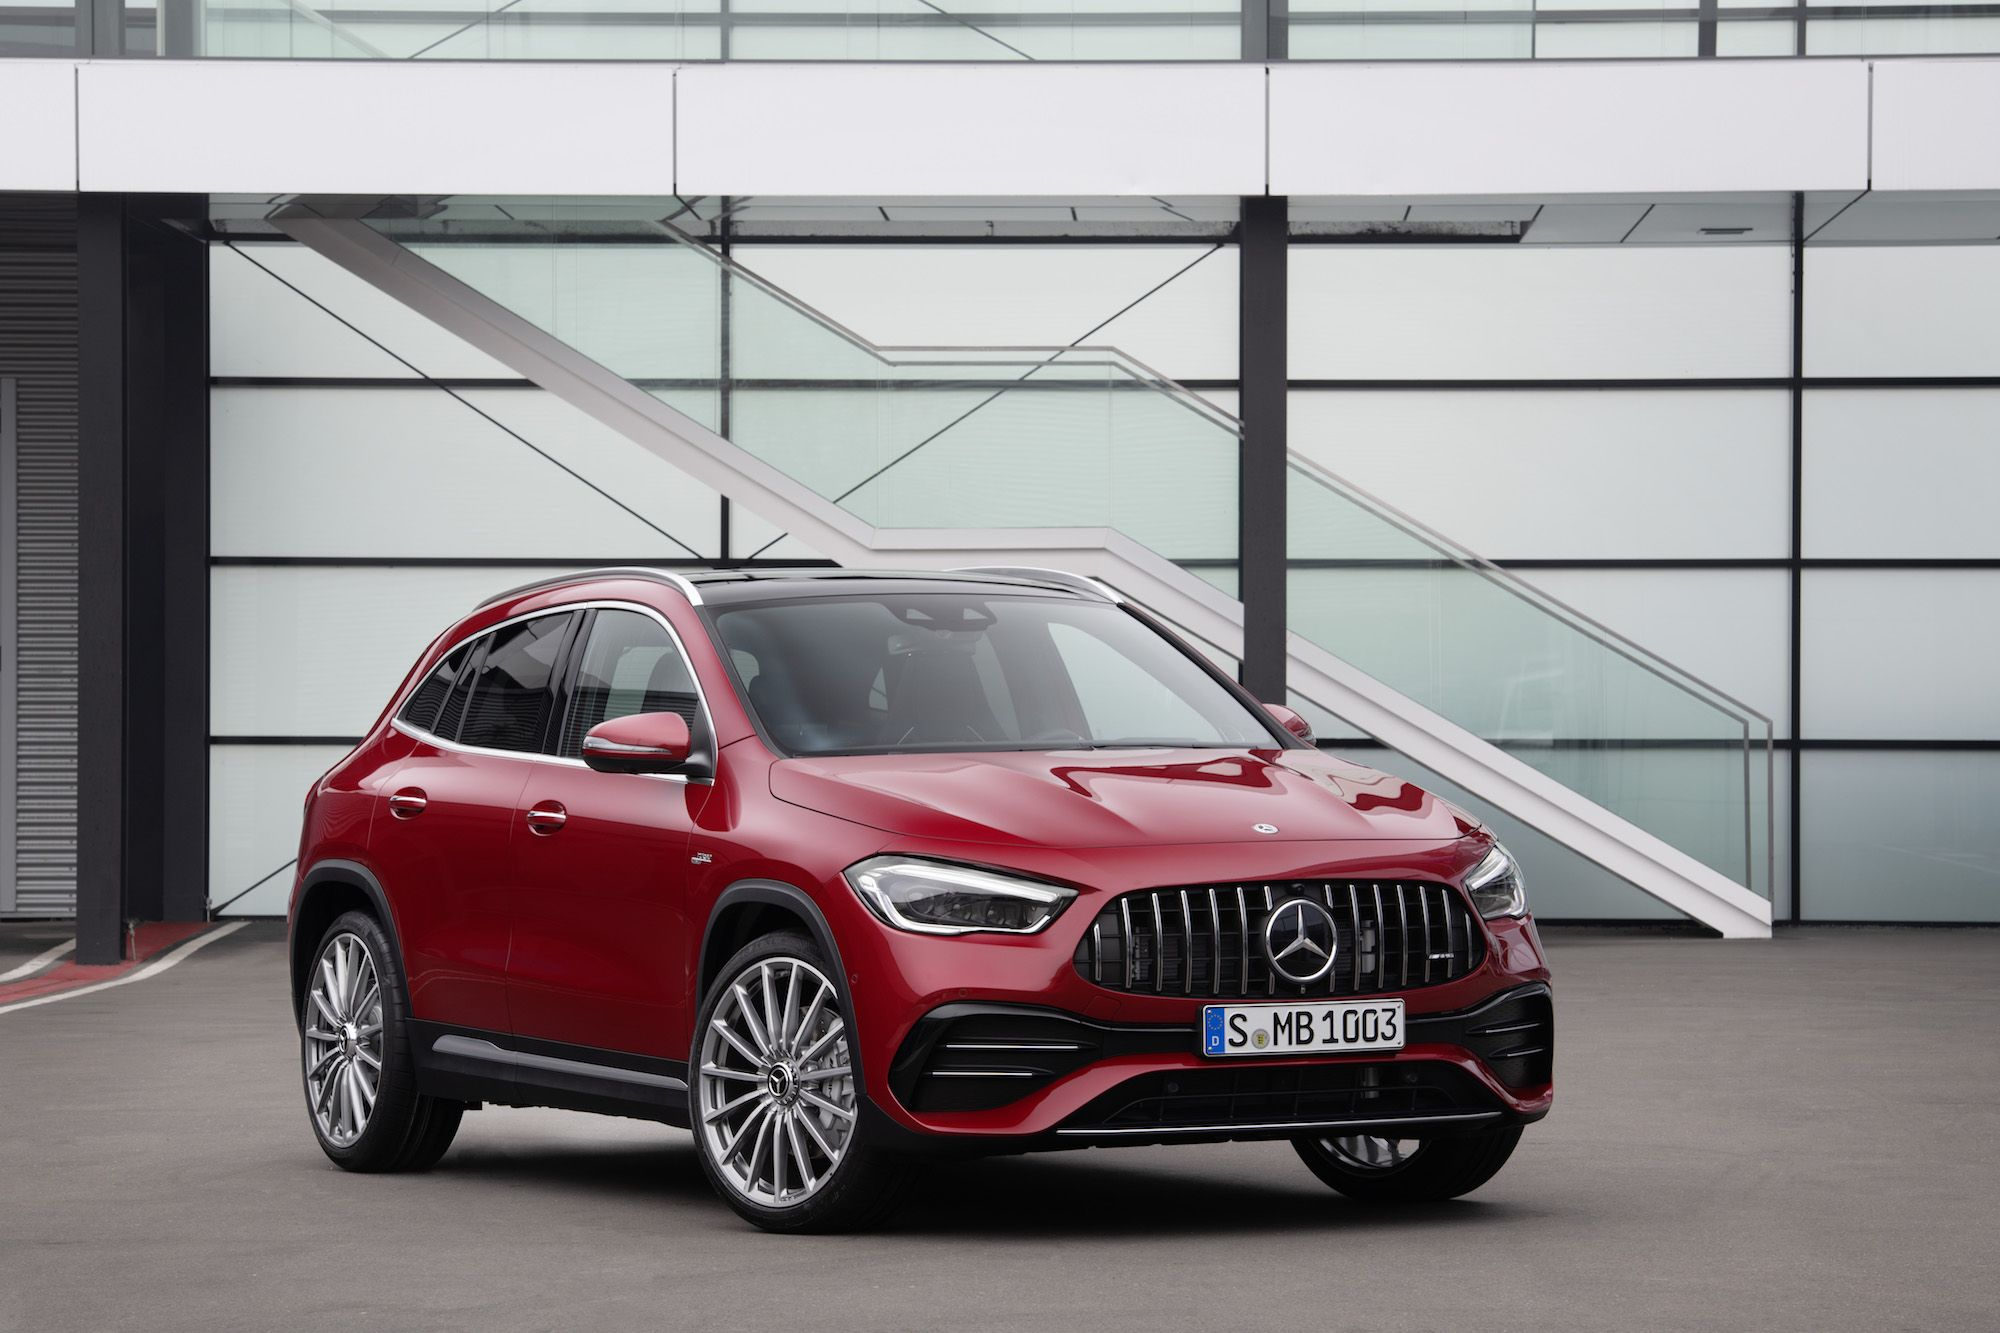 The 2021 Mercedes-AMG GLA 35 Is a Hot Hatch for Crossover-Crazed America